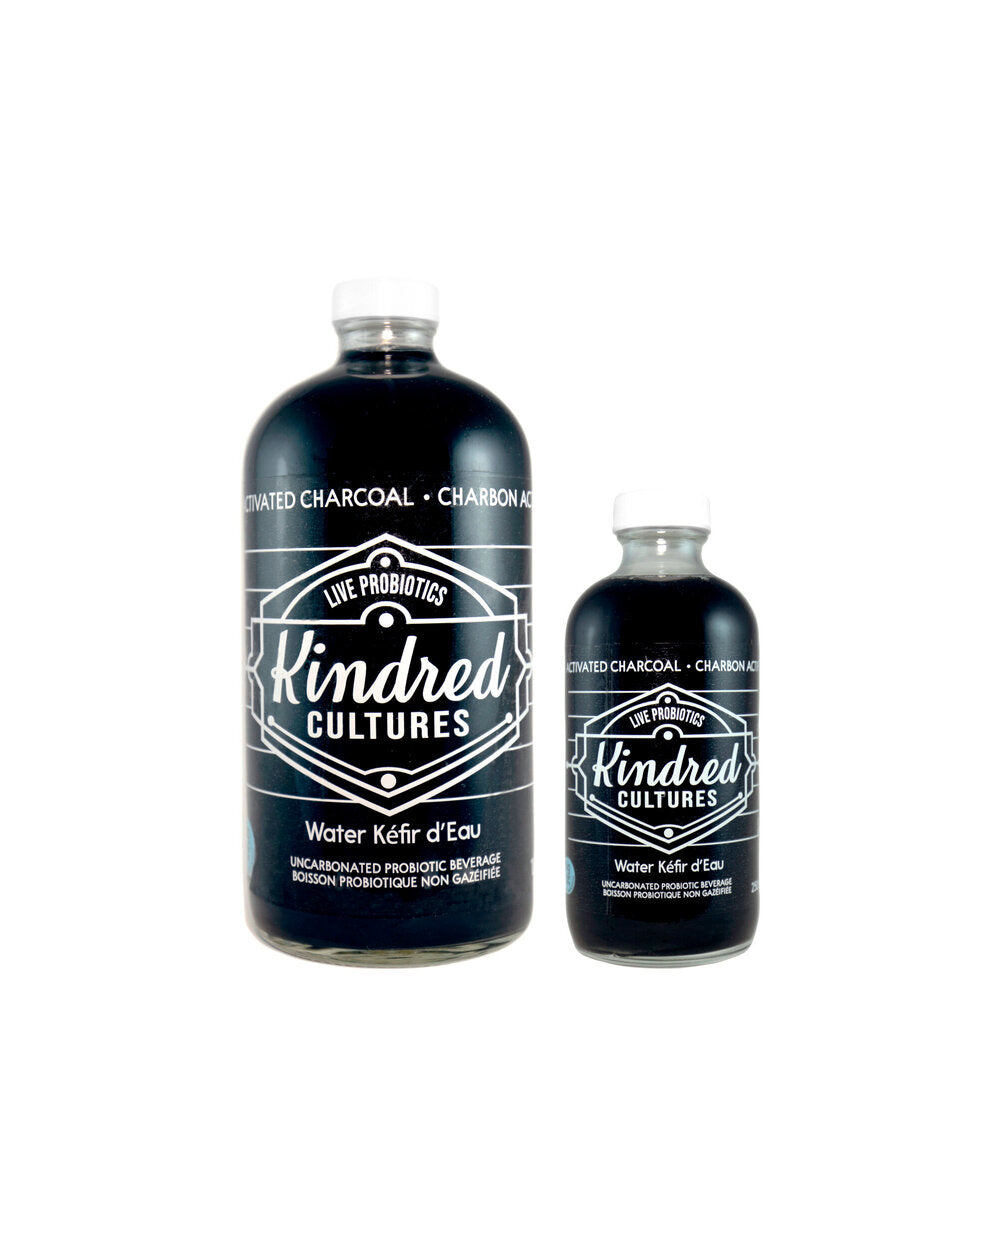 Kindred Cultures - Activated Charcoal Water Kefir